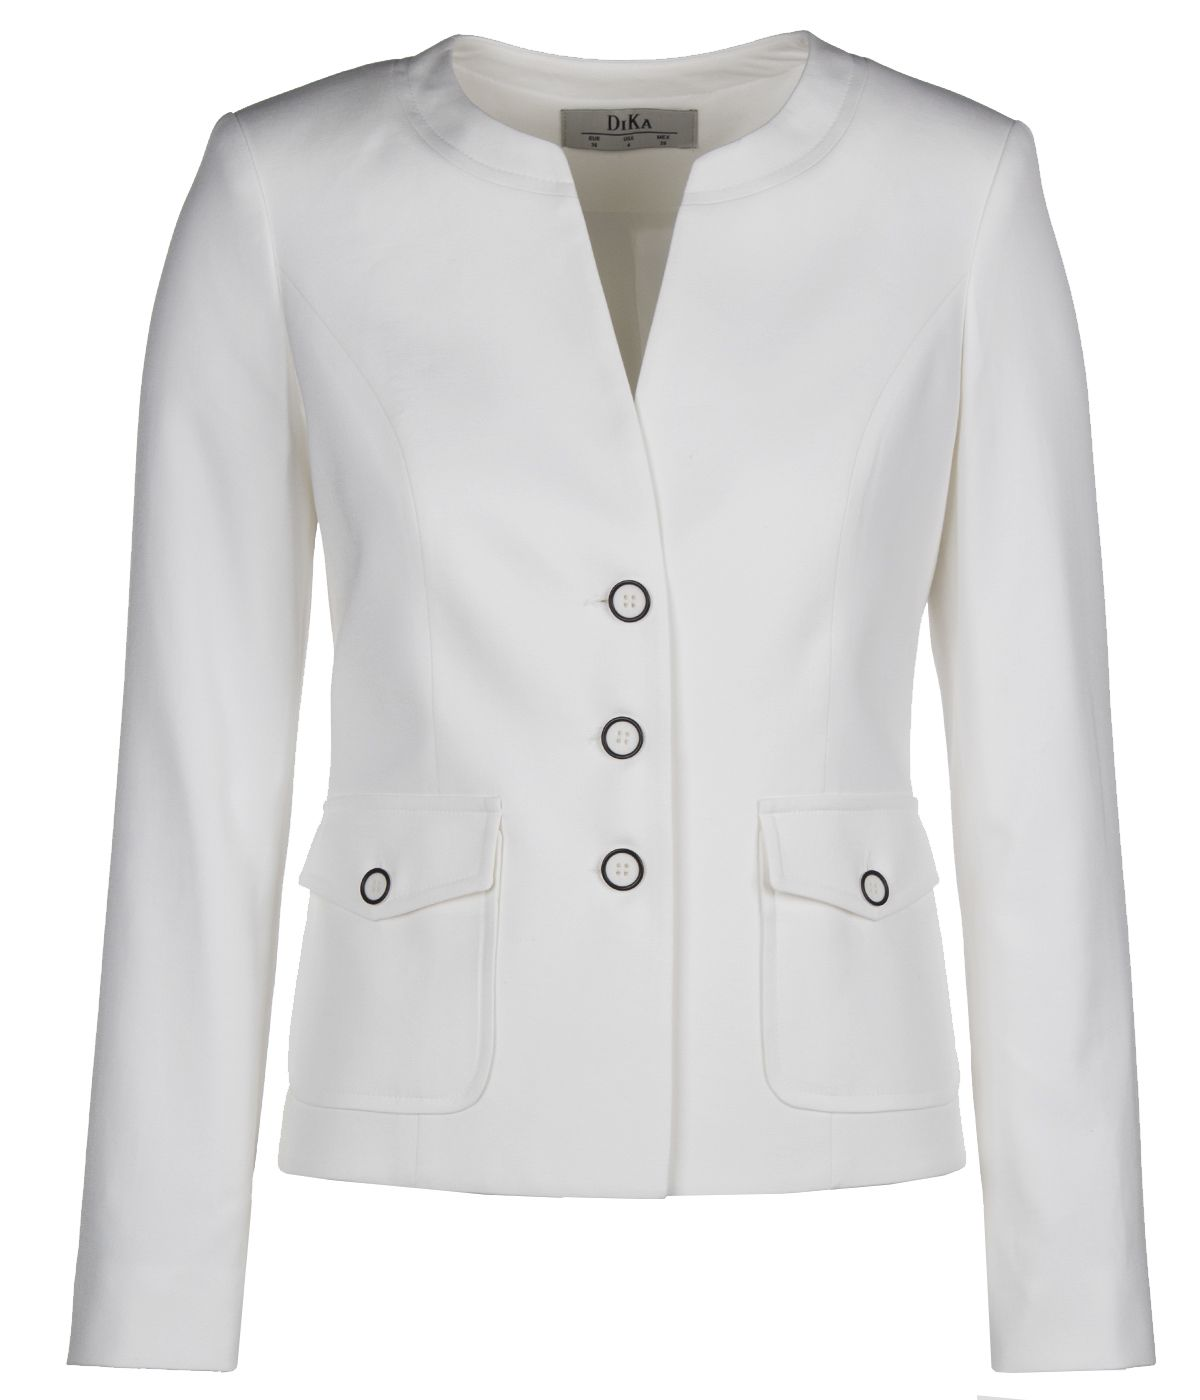 Single-breasted jacket external pockets with flaps, with viscose and cotton 0